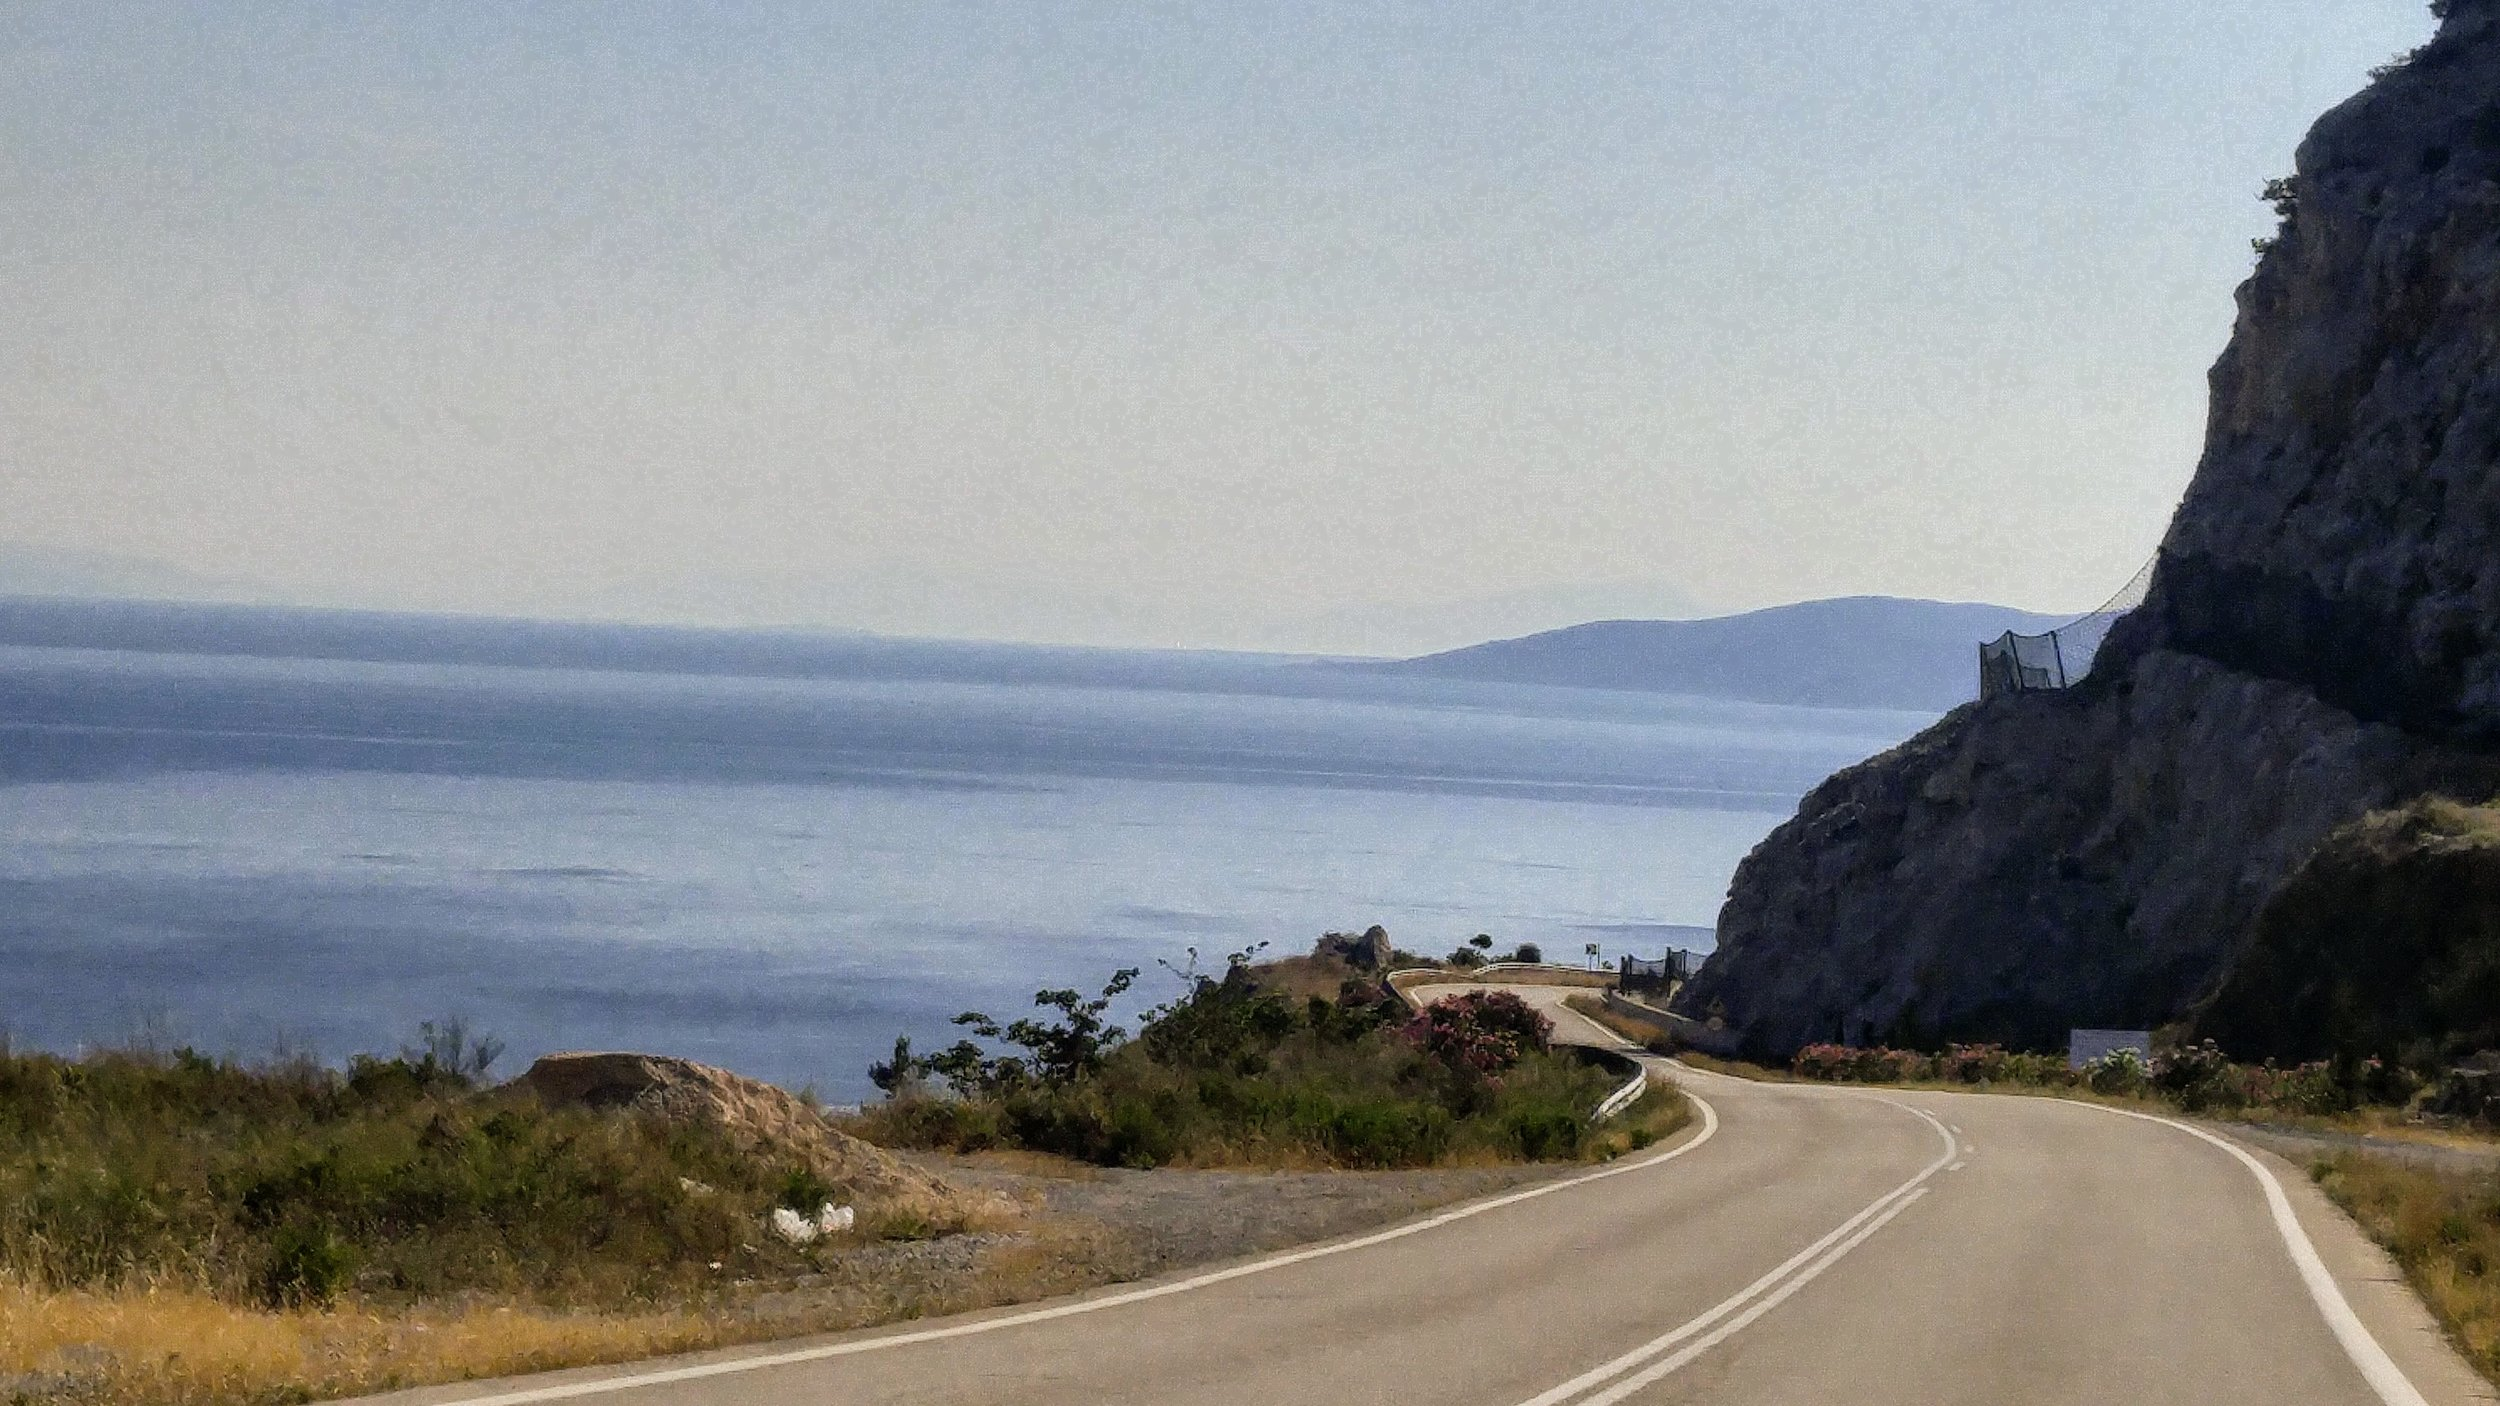 Typical view while driving a coastal road.